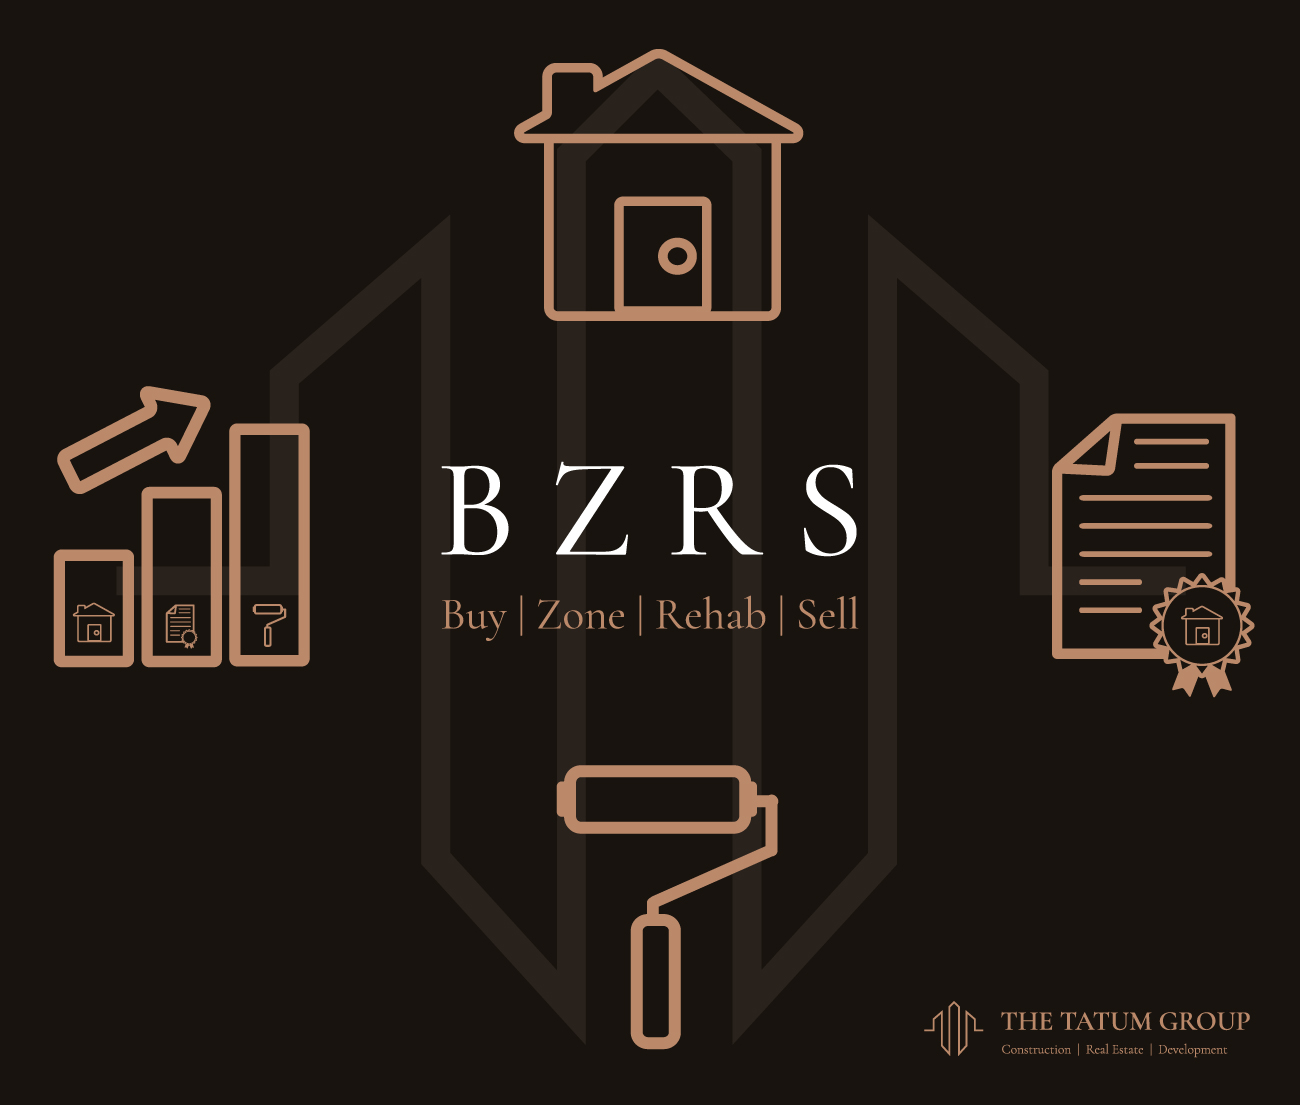 What is BZRS?